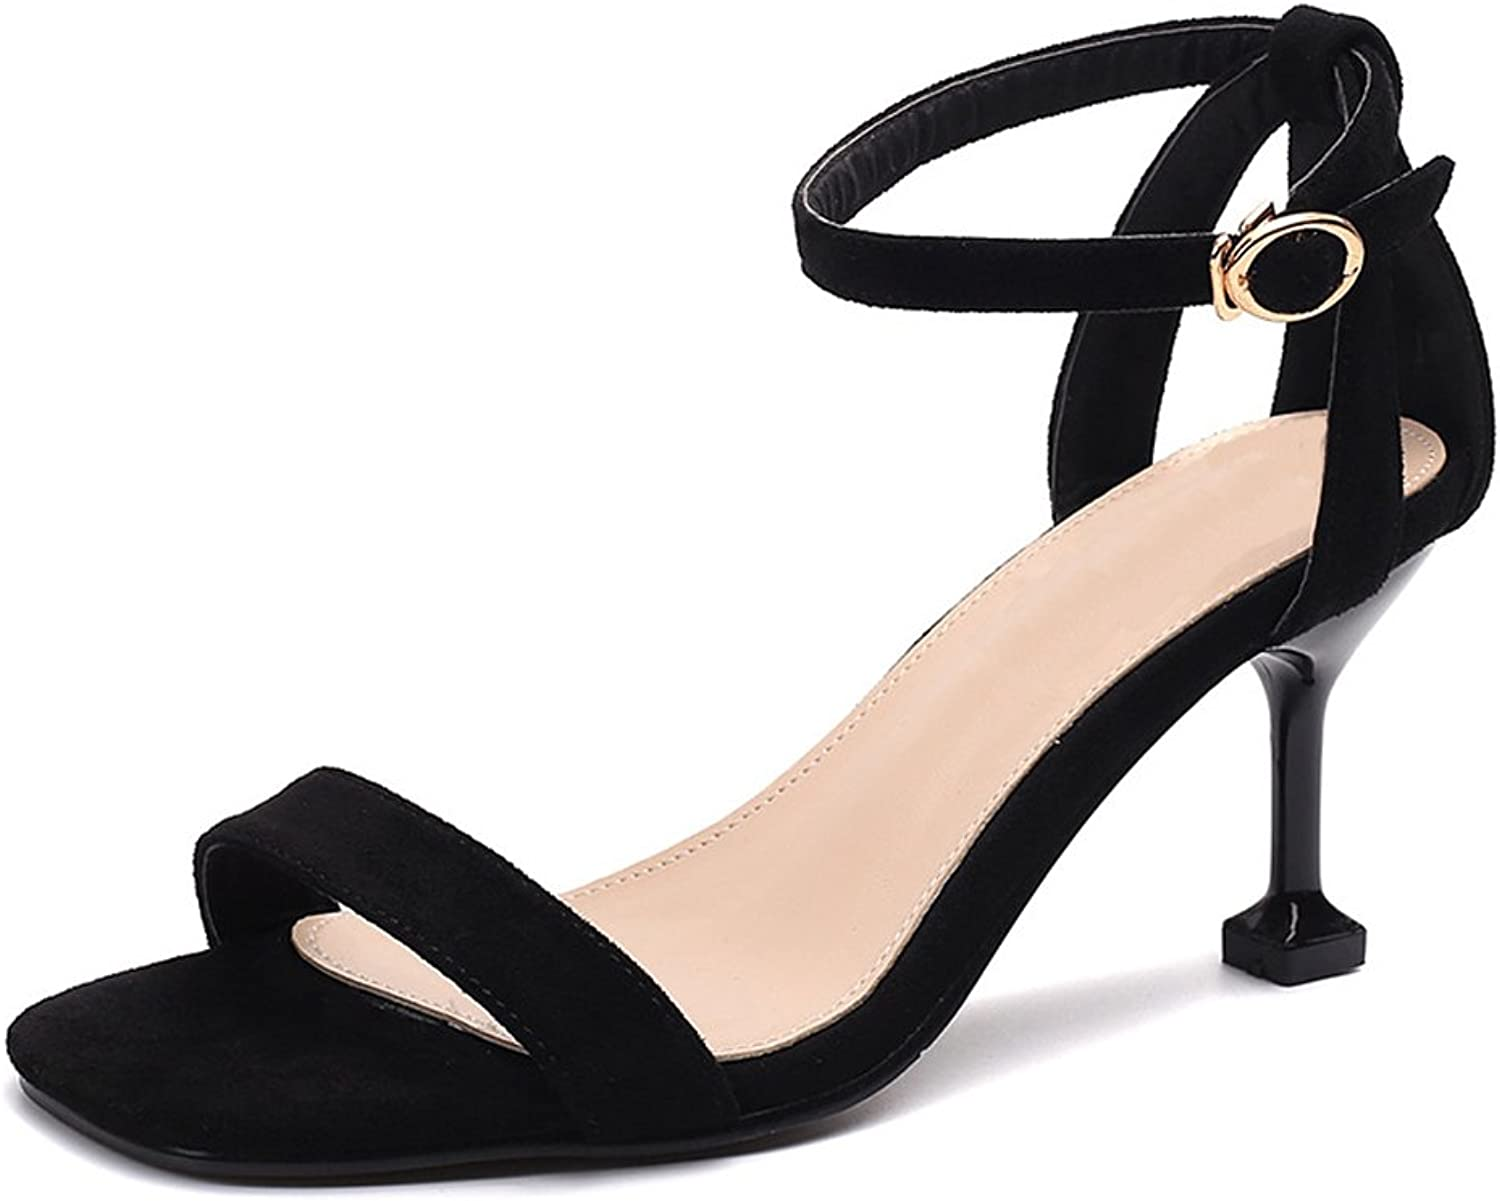 Dreneco Women Kitten Heel Ankle Strap Sandals Ladies Peep Toe Strappy Party shoes